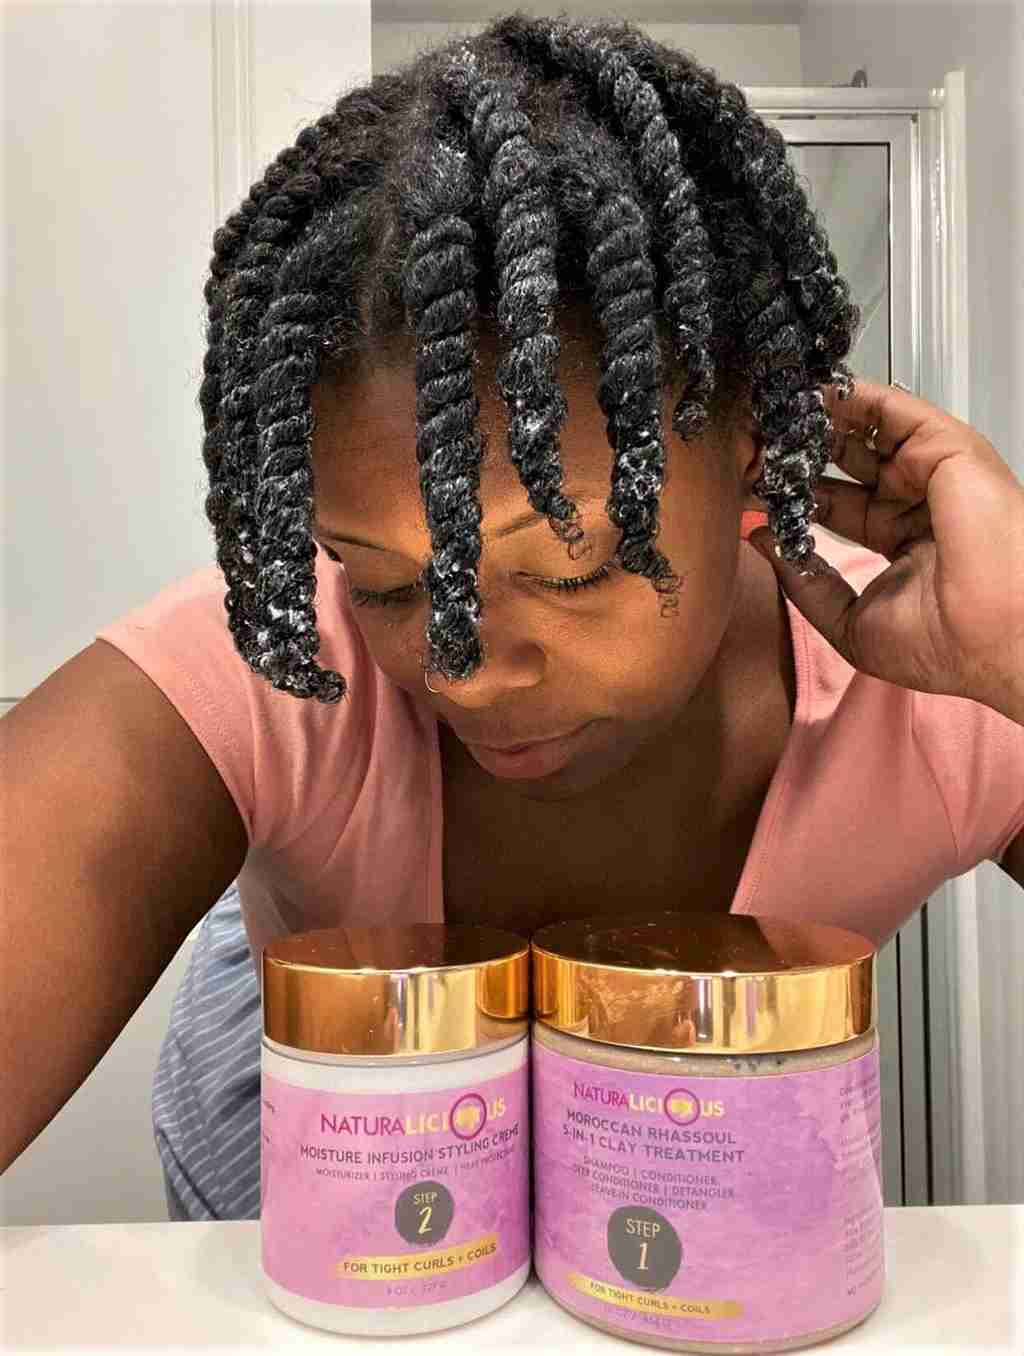 https://naturalicious.net/collections/view-products/products/rhassoul-clay-for-hair-coarse-hair